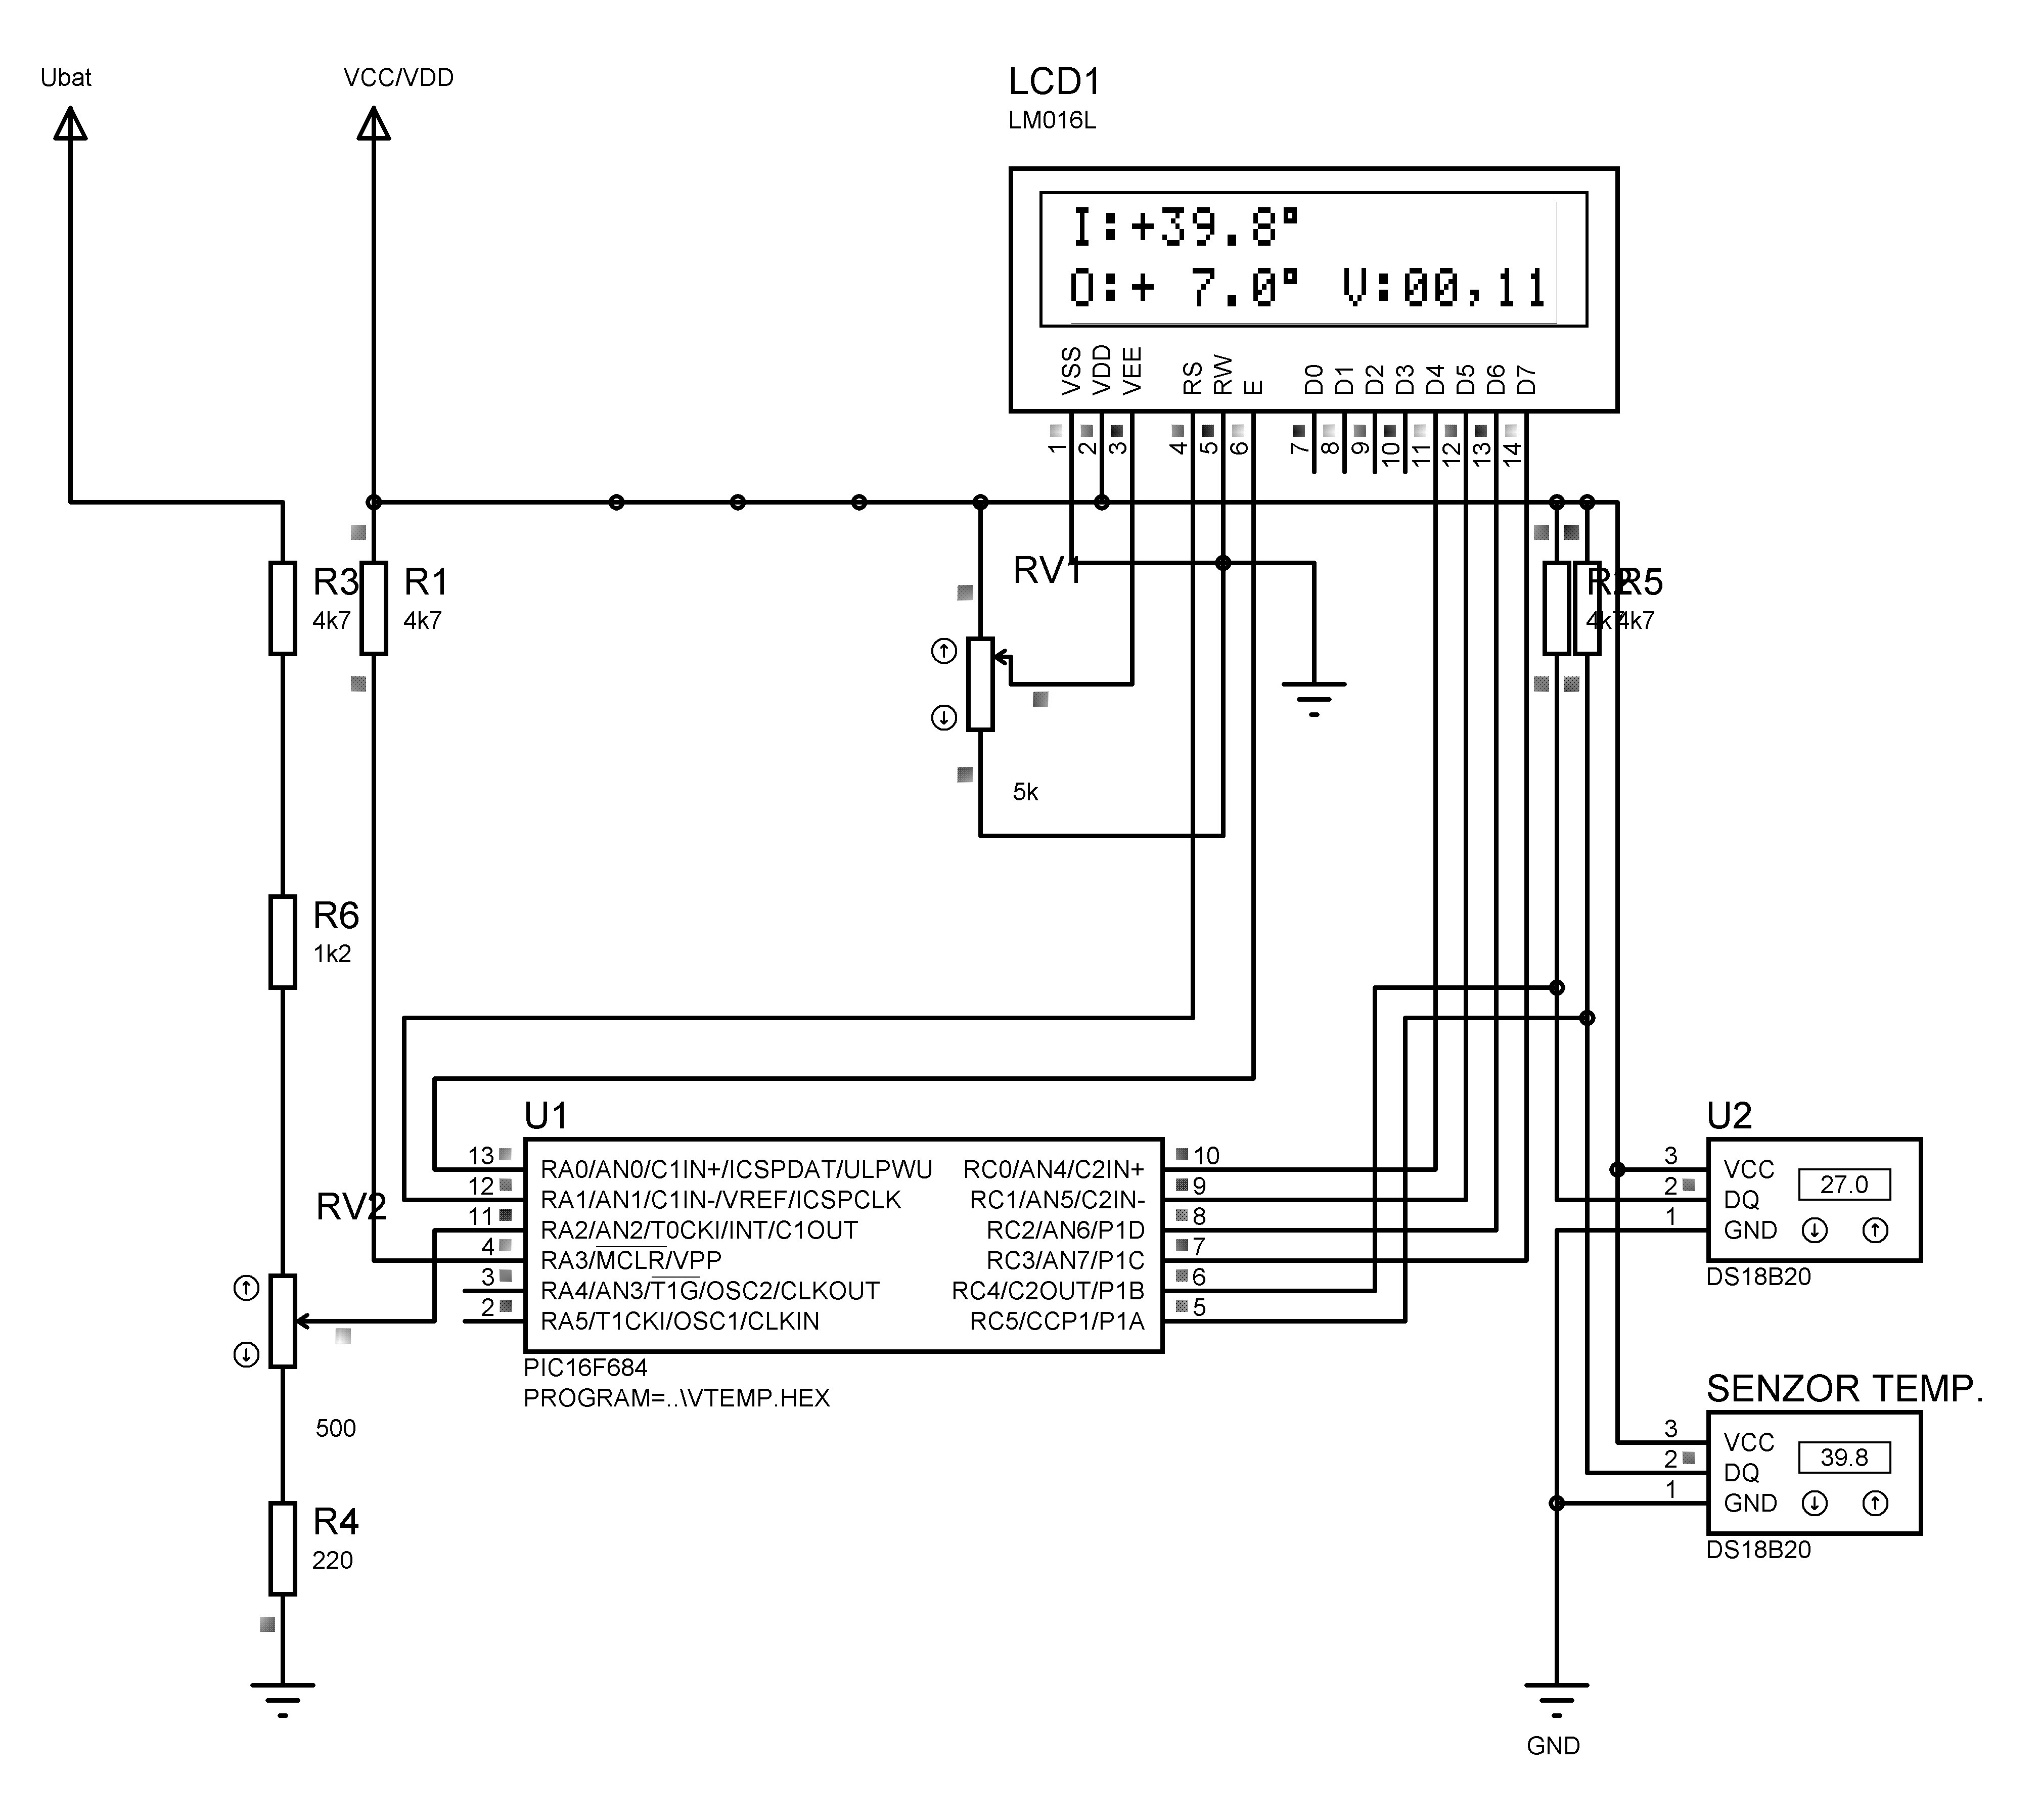 Problems With 16f684 Rc4 Wiring Diagram Name V Temp Views 2080 Size 7819 Kb